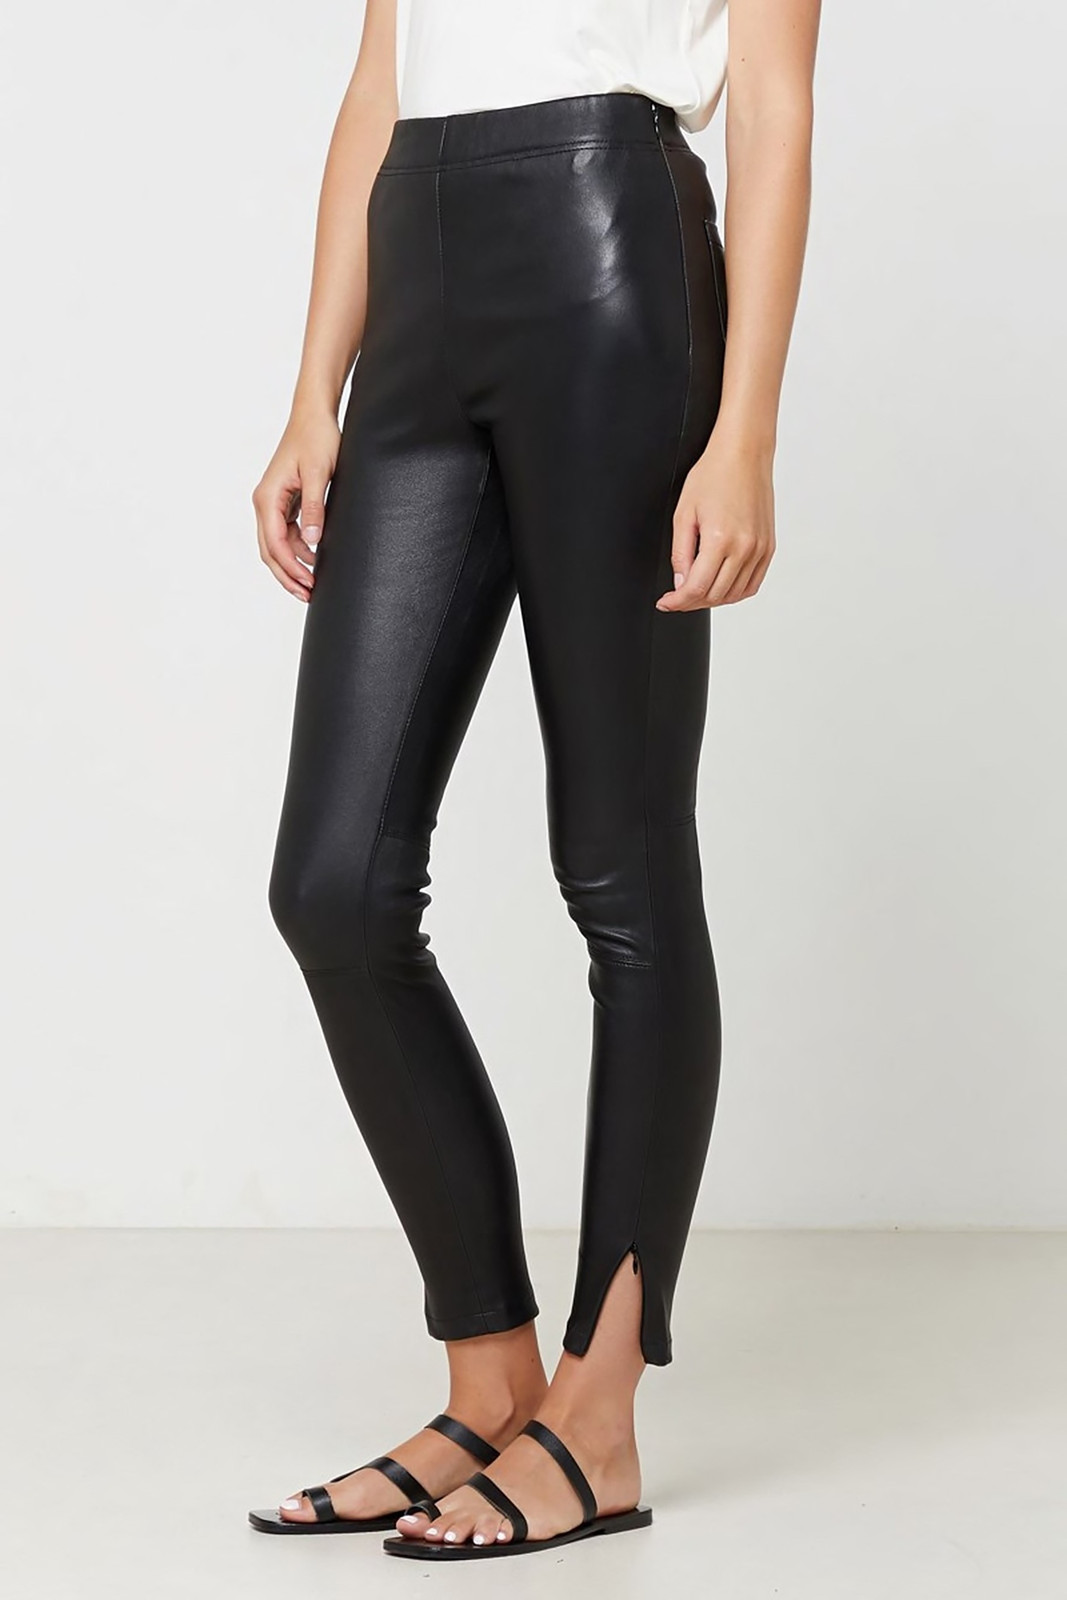 Elka Collective Rosa Leather Pant Black  0